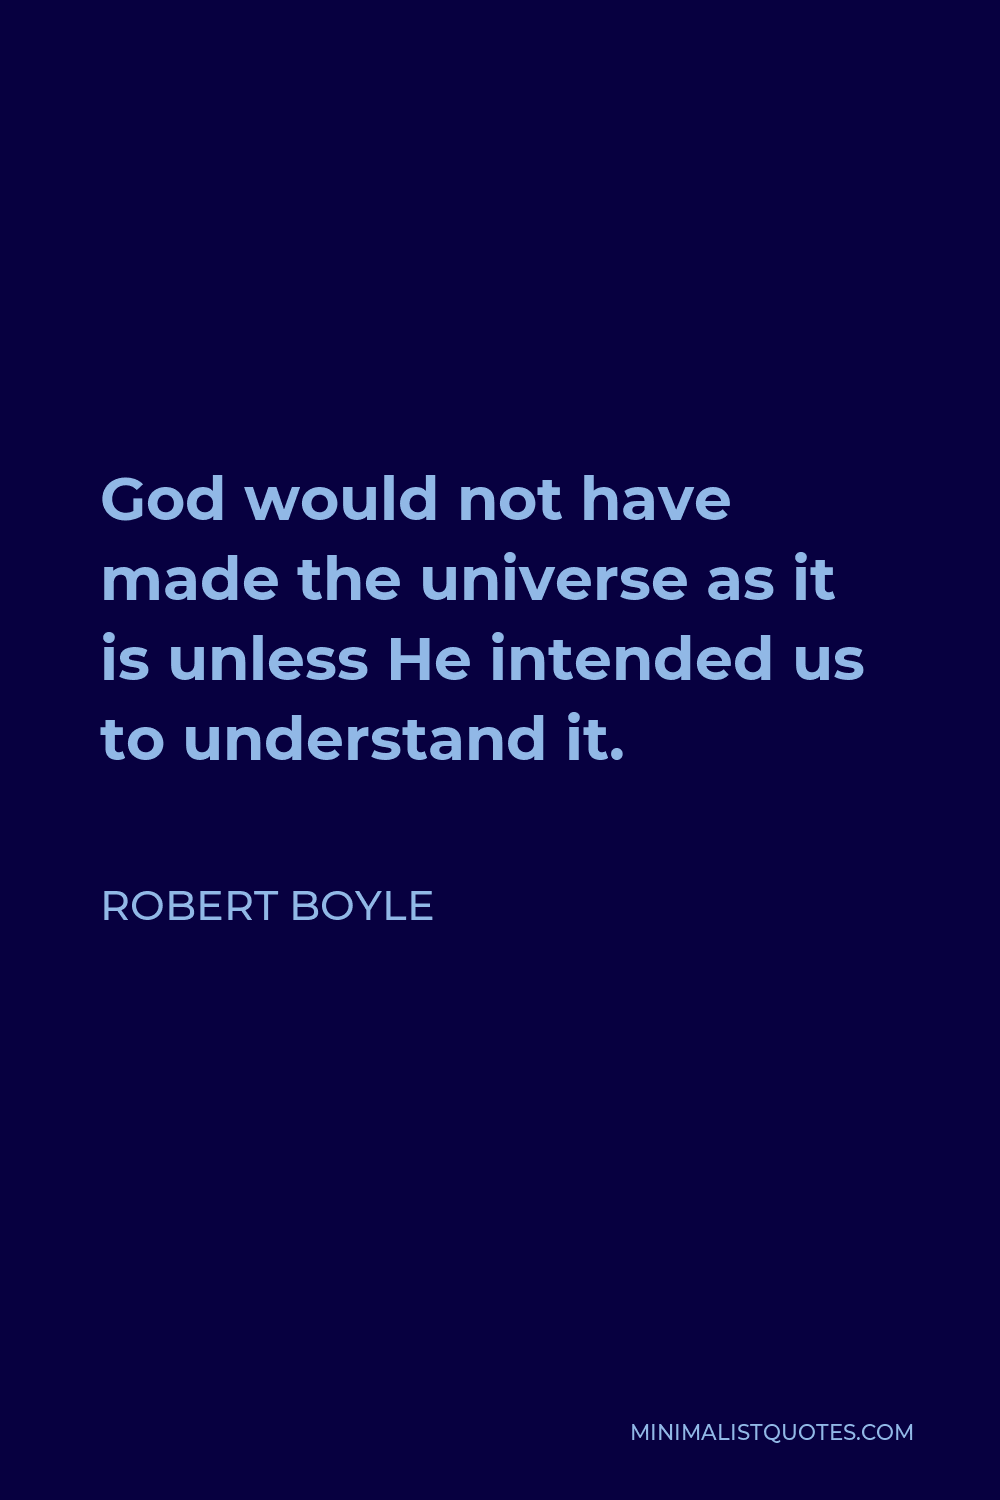 Robert Boyle Quote - God would not have made the universe as it is unless He intended us to understand it.